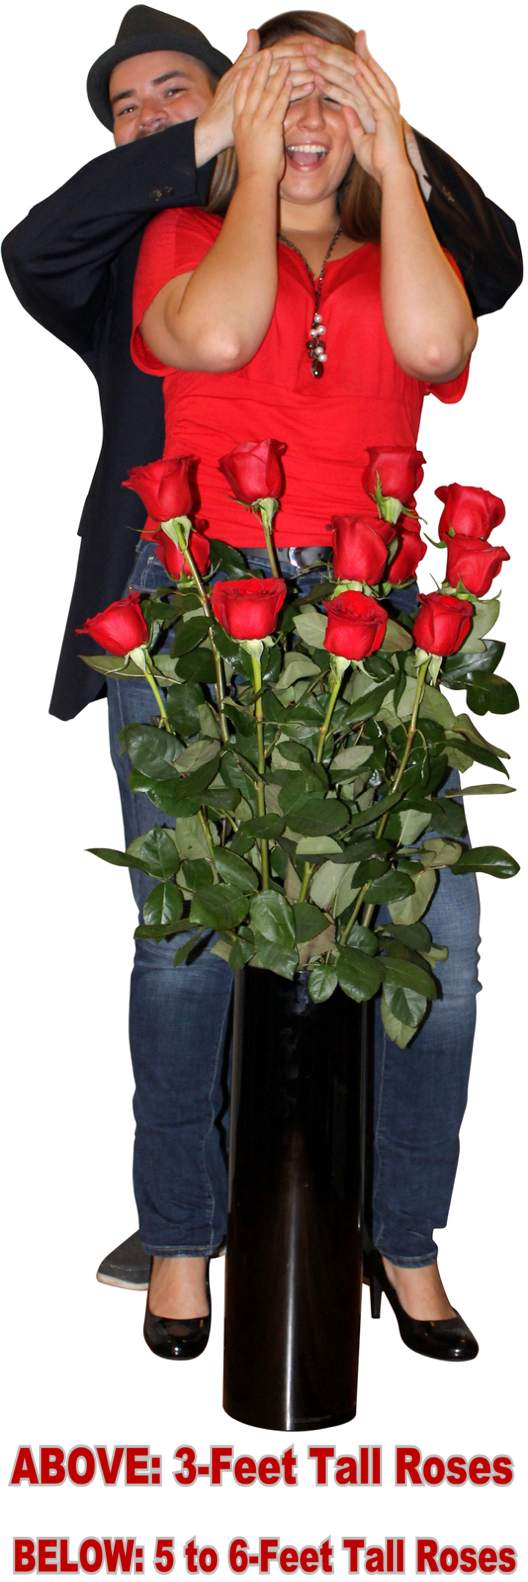 Order these giant 3-feet tall live roses with matching vase NOW!